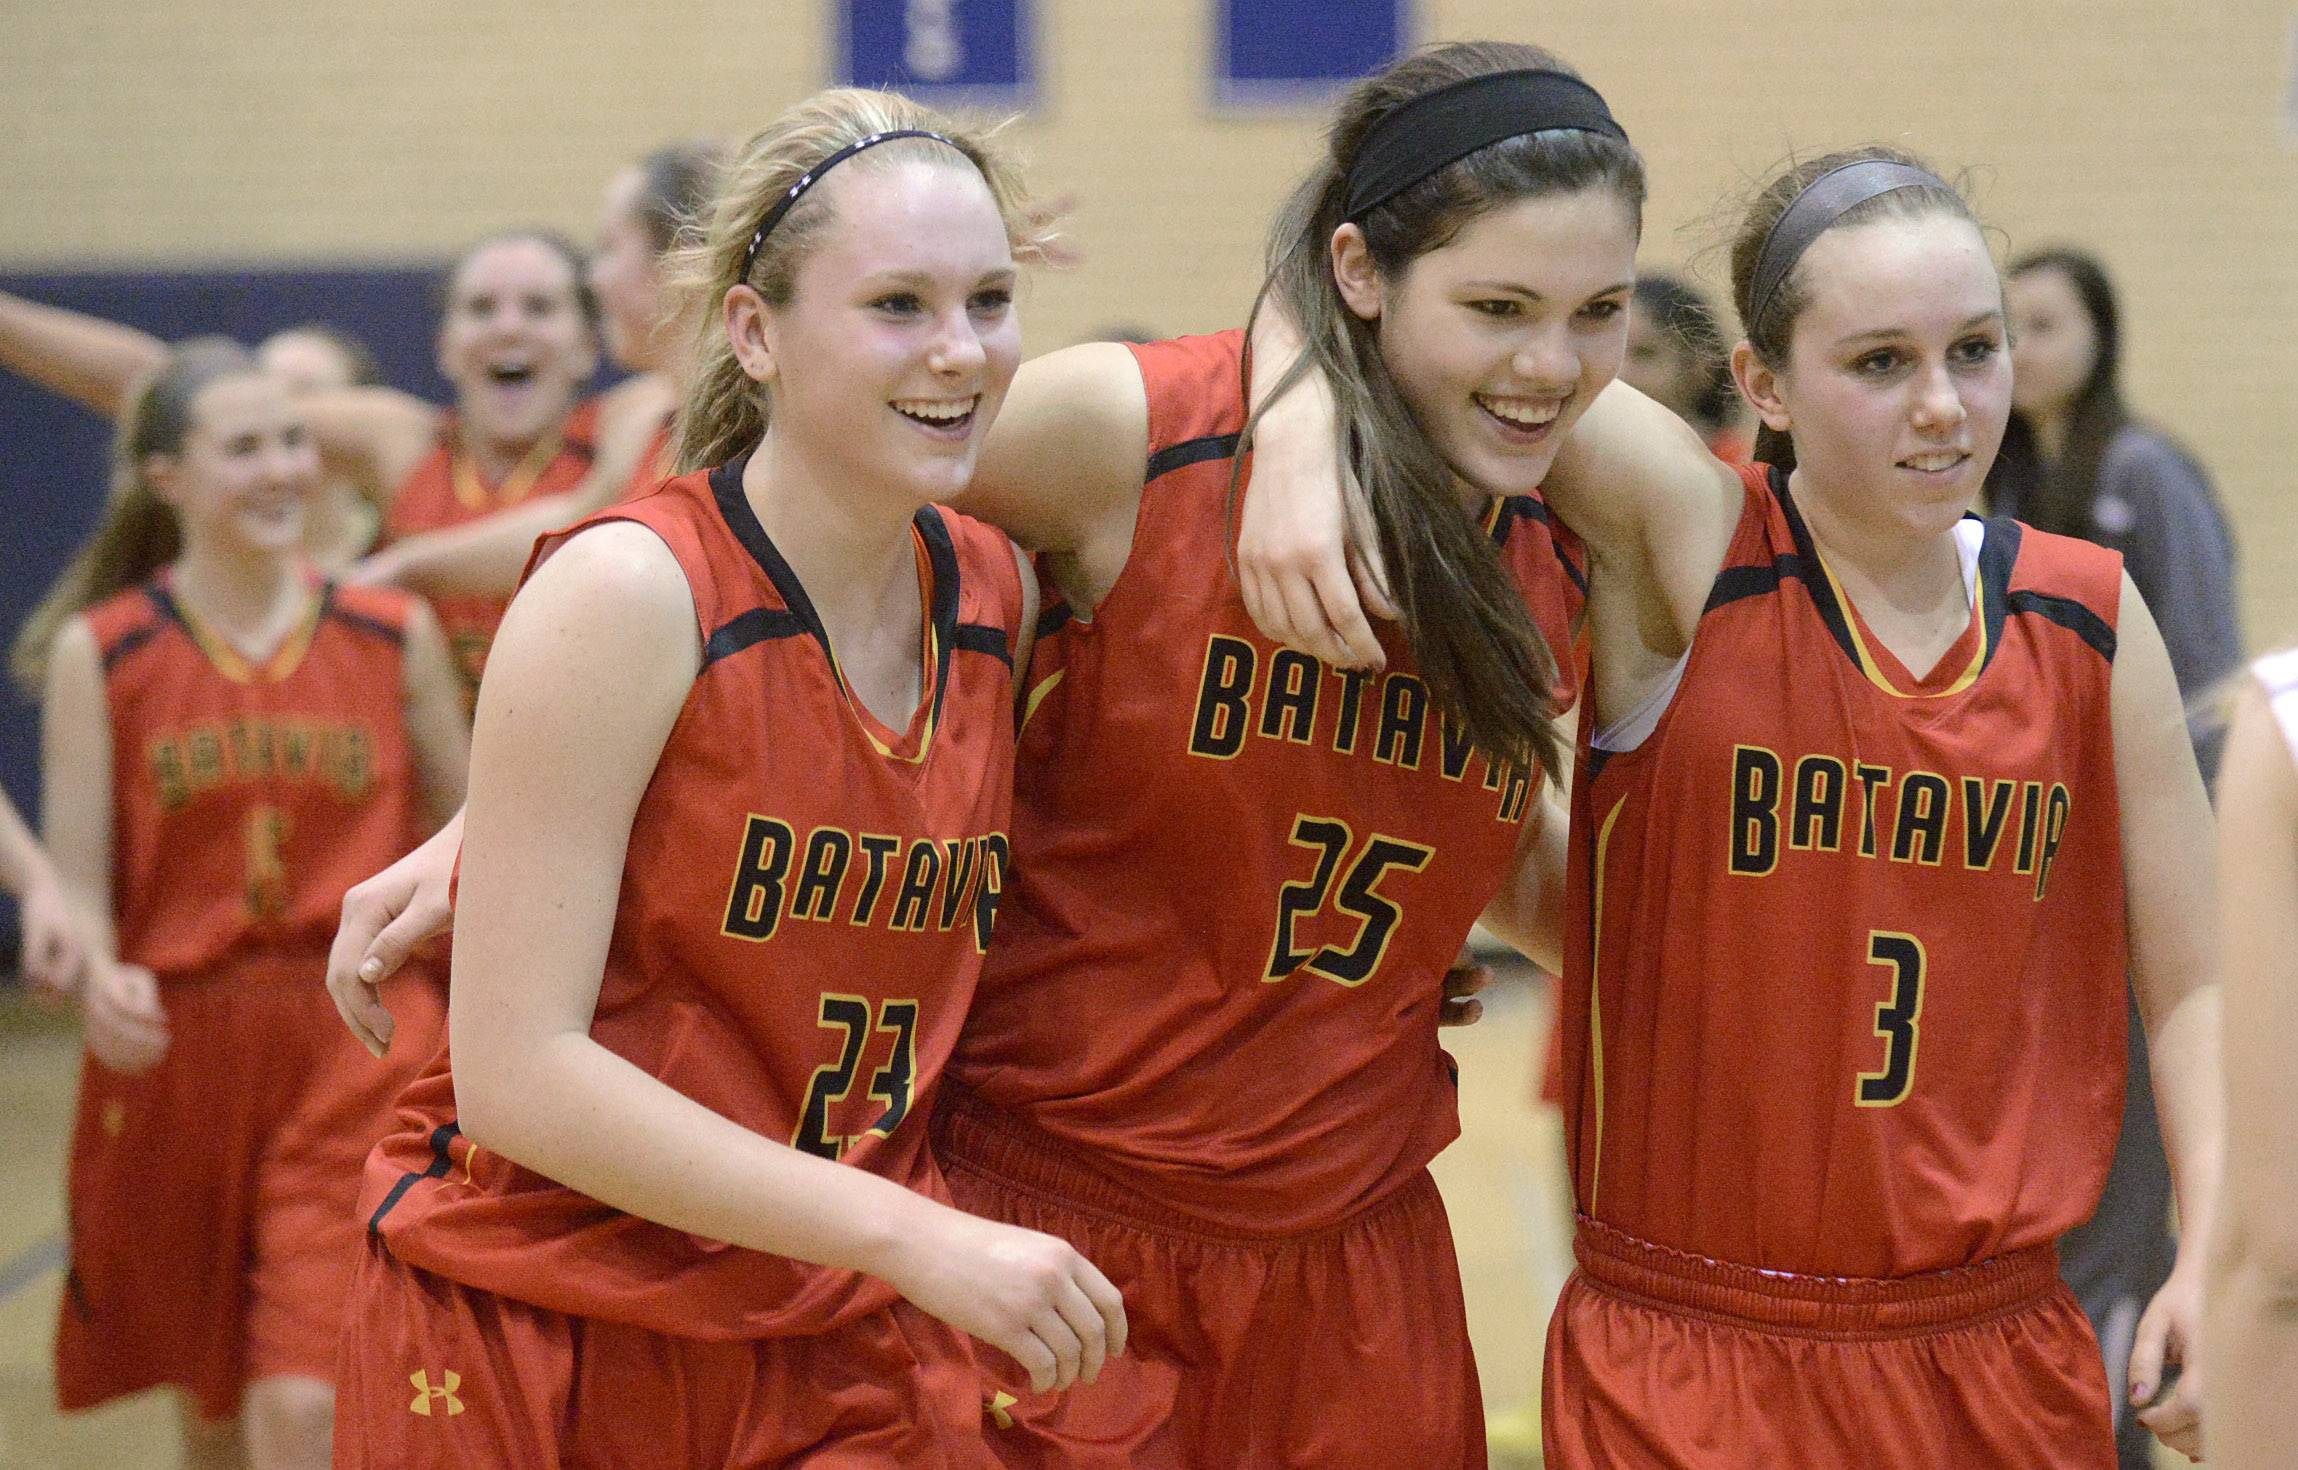 Laura Stoecker/lstoecker@dailyherald.com  Batavia's Mackenzie Foster, left, Katie Weber, center, and Erin Bayram, right, embrace as they walk off the court after their 4A sectional semifinal win over Downers Grove North at Addison Trail High School in Addison on Tuesday, February 25.